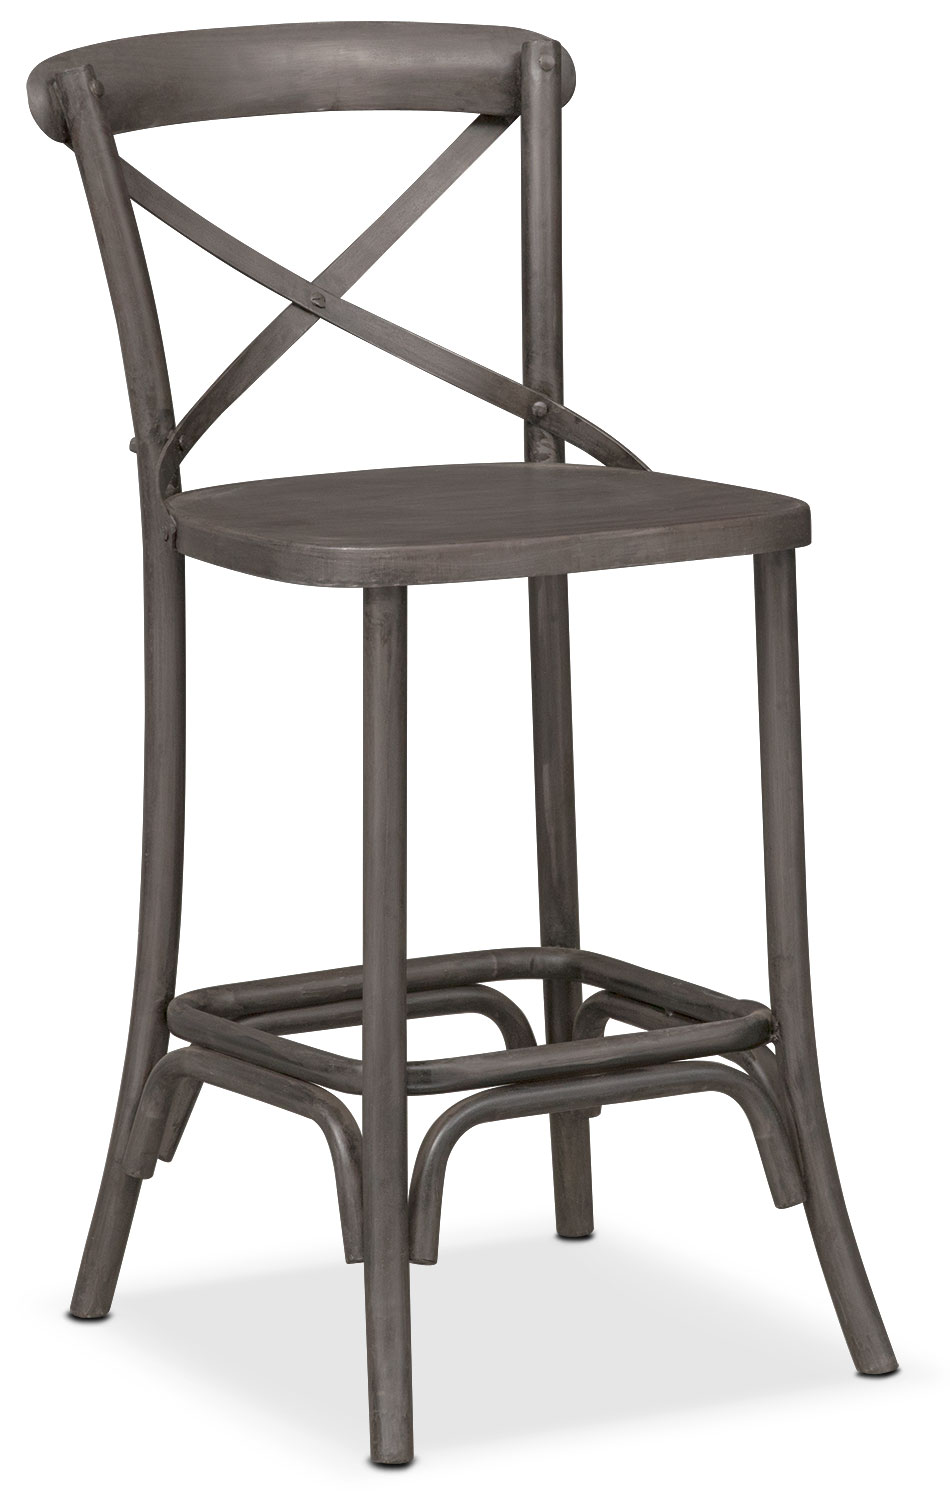 Dining Room Furniture - Braddock Counter-Height Stool - Black